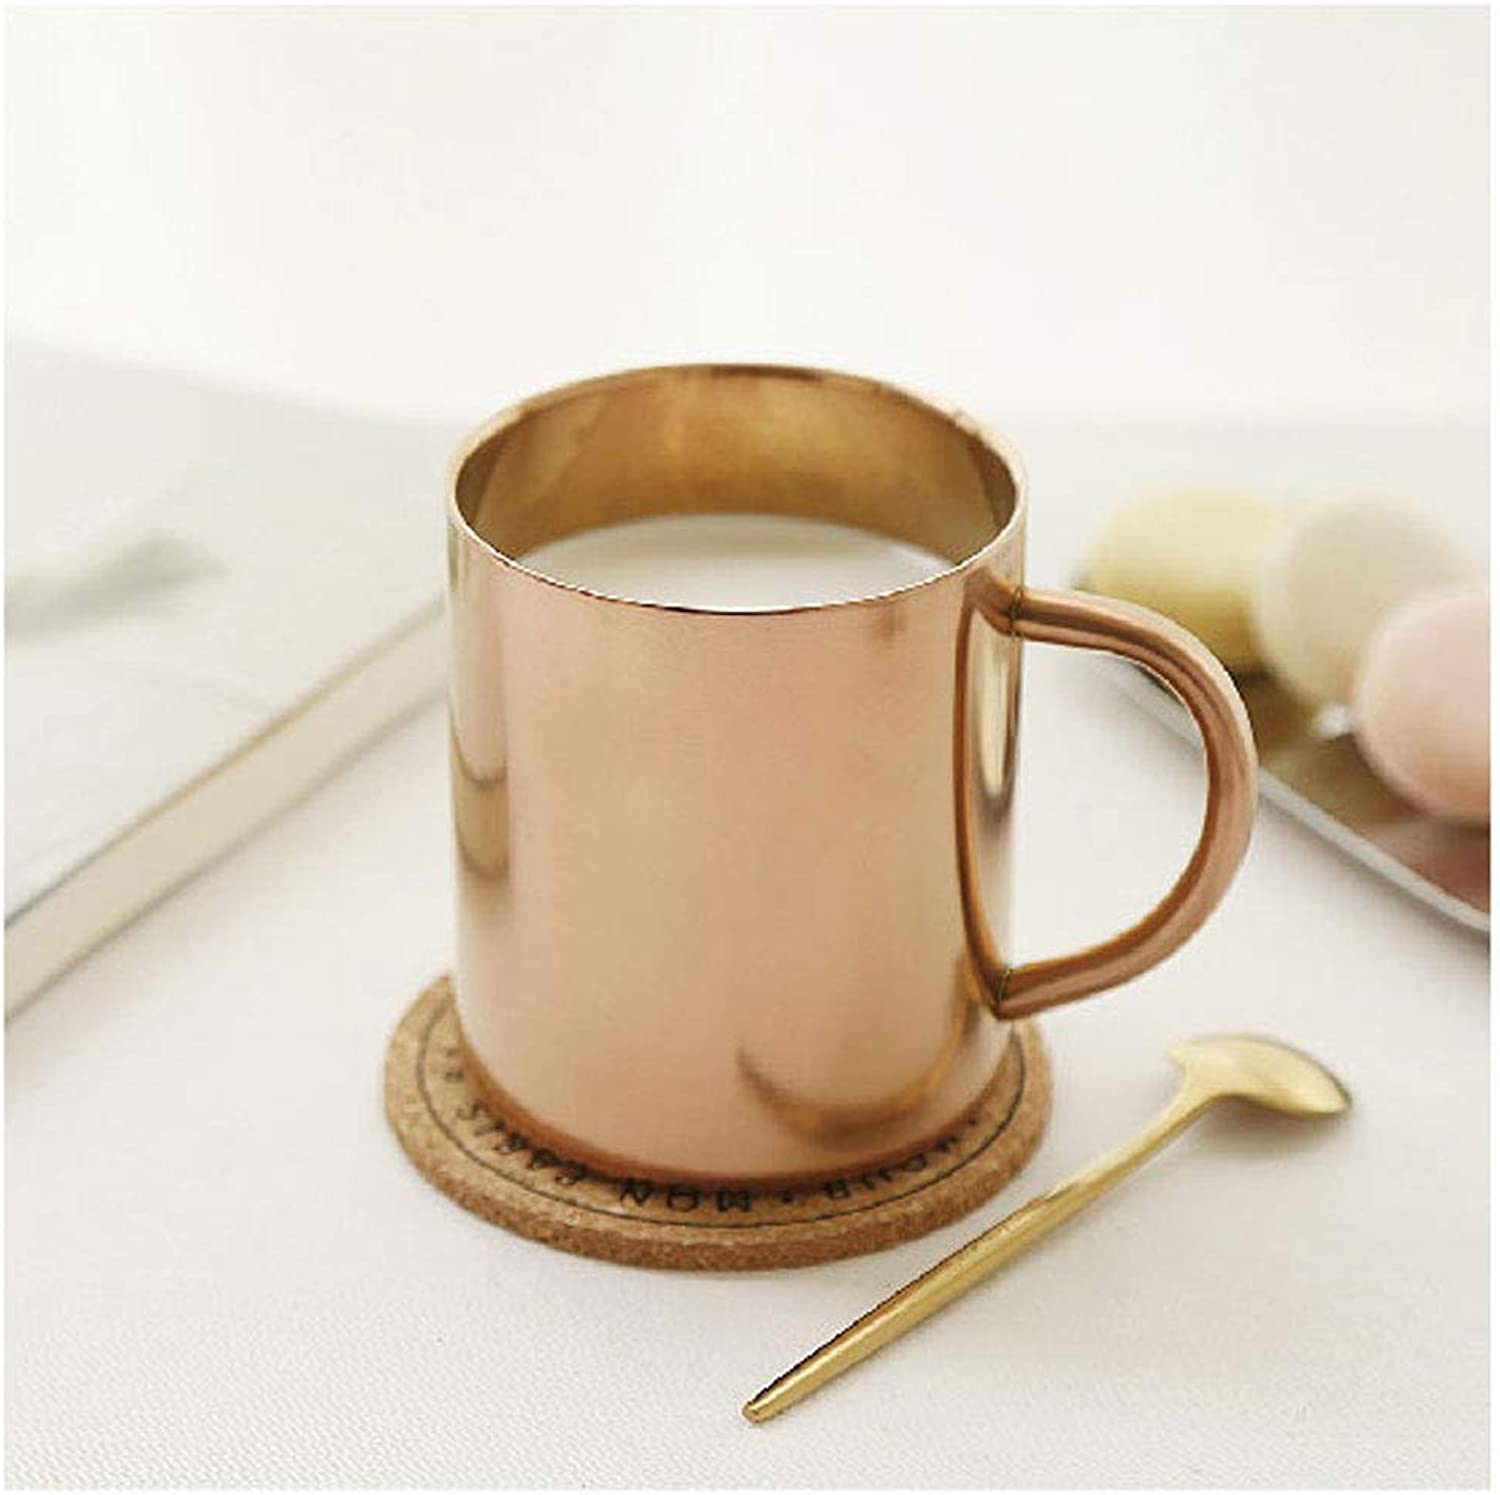 Nordic Design 304 Stainless Steel Mug gold Copper Plated Coffee Mug Milk Cup Antiscalding Cup